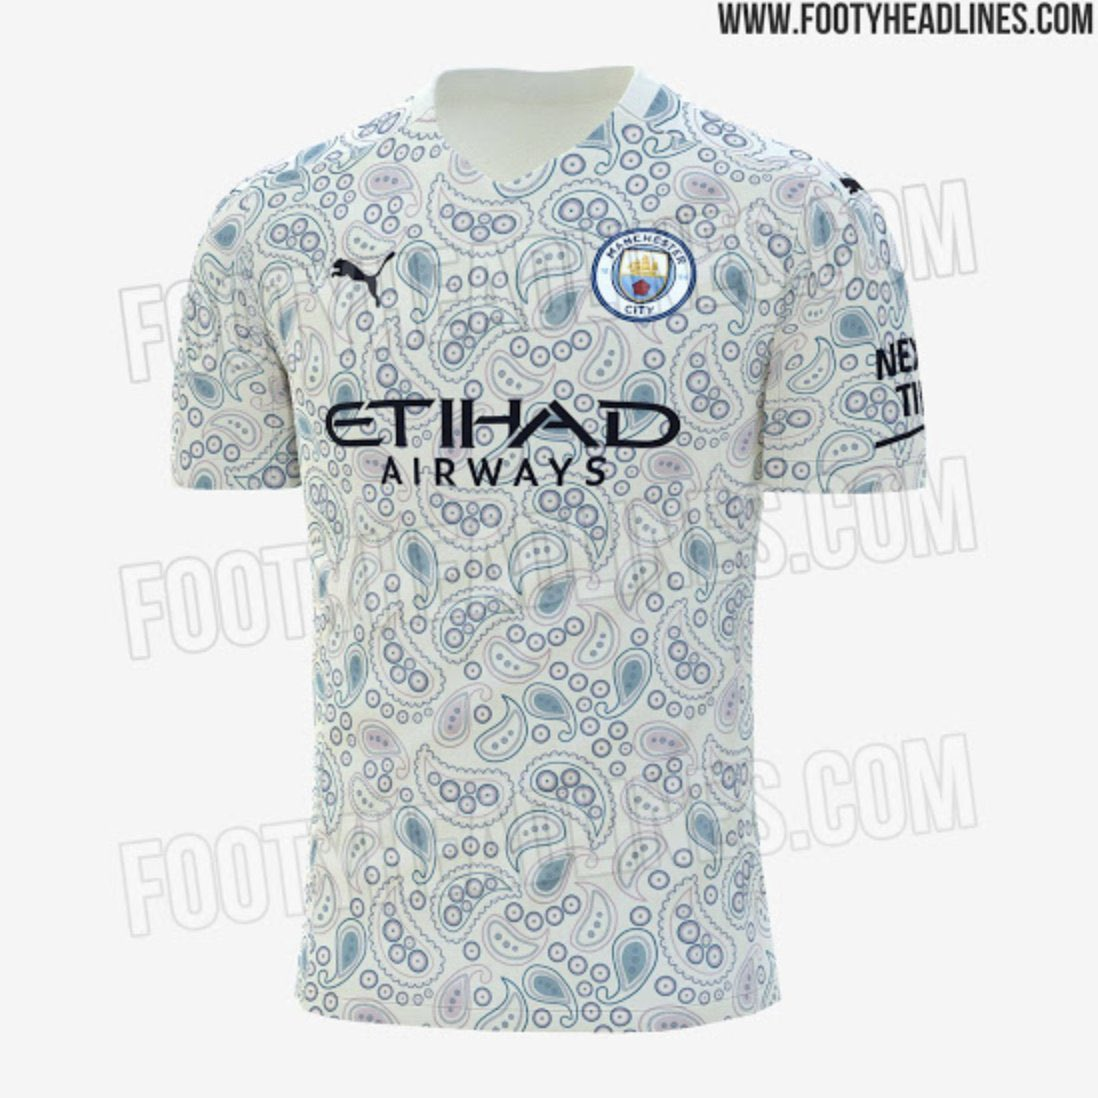 Manchester City's 2020/21 leaked third kit!  [@Footy_Headlines] https://t.co/zNNmgMYSAv